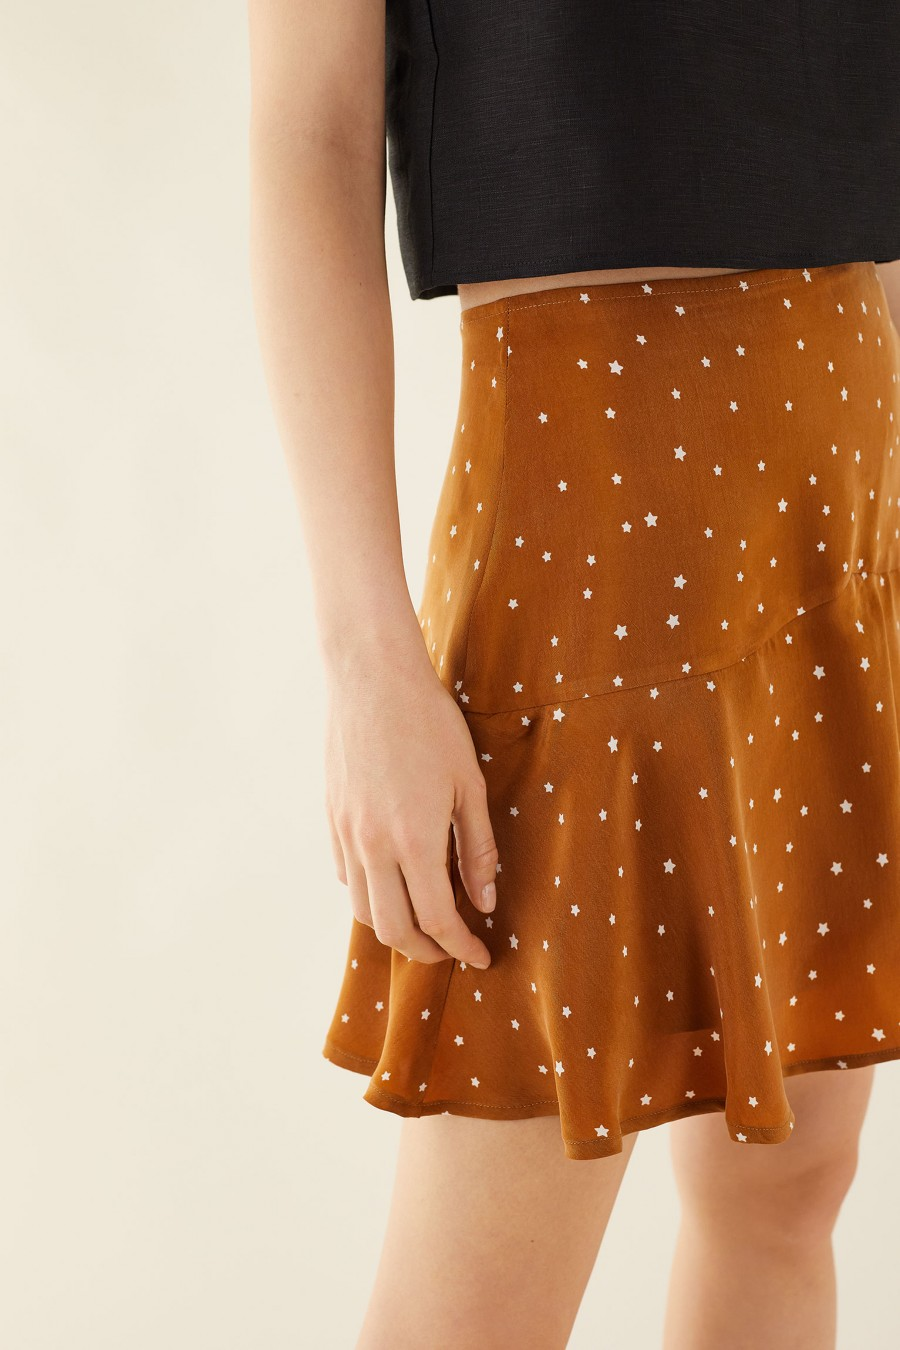 biscuit brown skirt with little stars